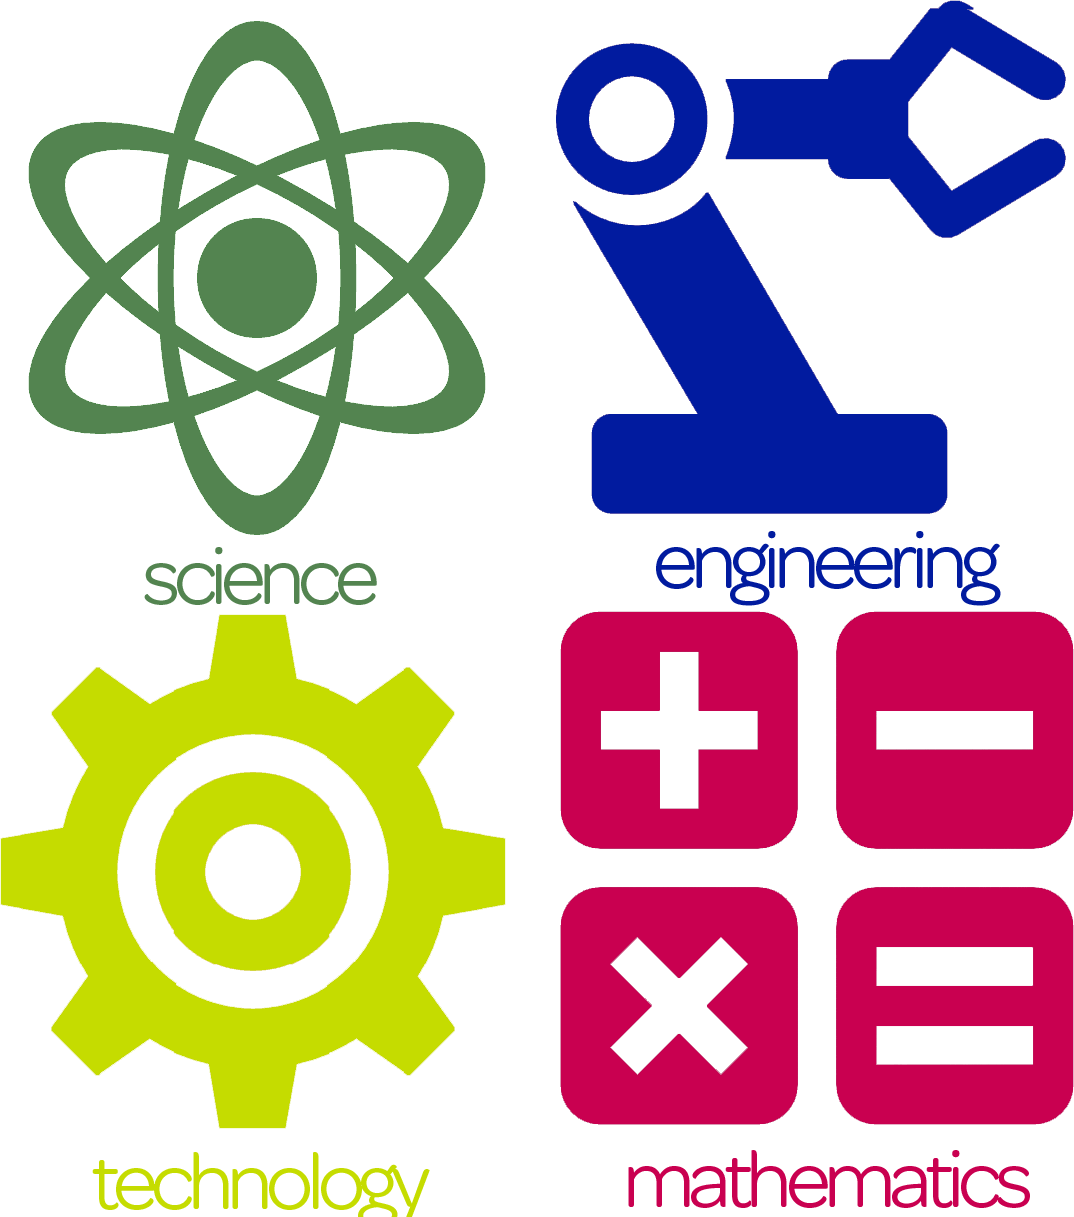 Math and science clipart vector library library Math And Science Clipart - Science Technology Engineering ... vector library library